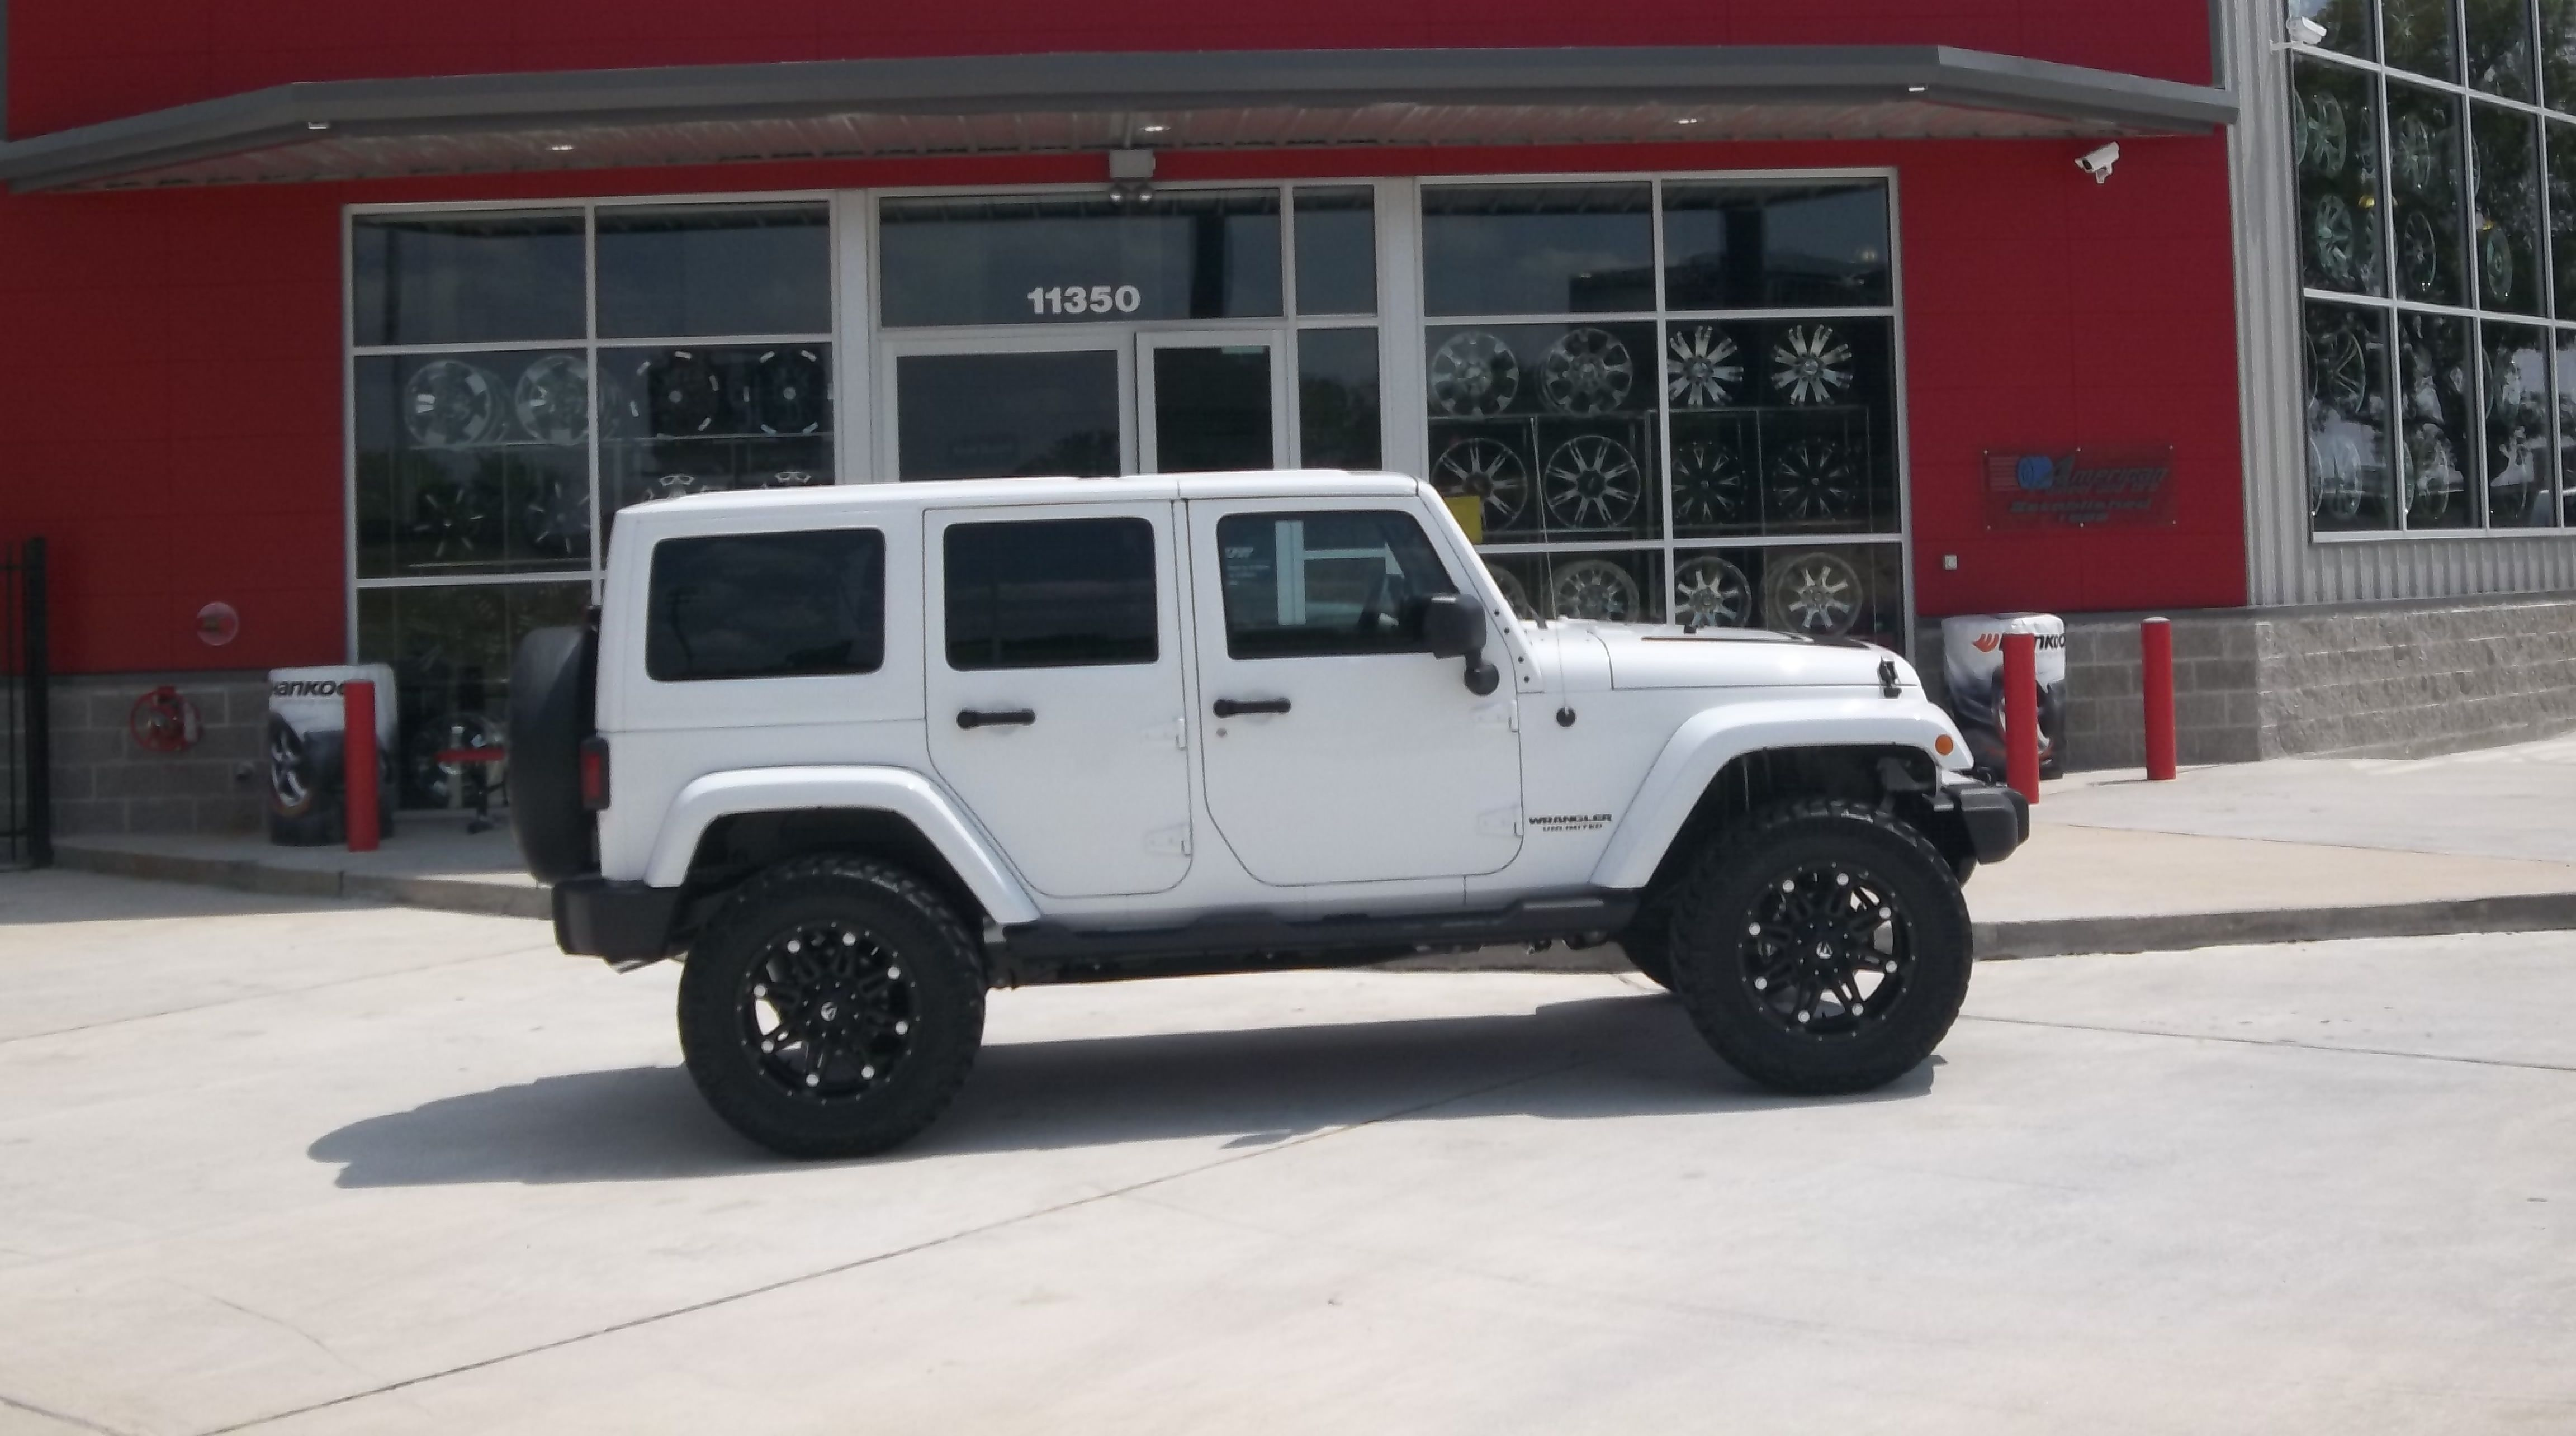 Fuel hostage rims in a 2012 jeep wrangler unlimited